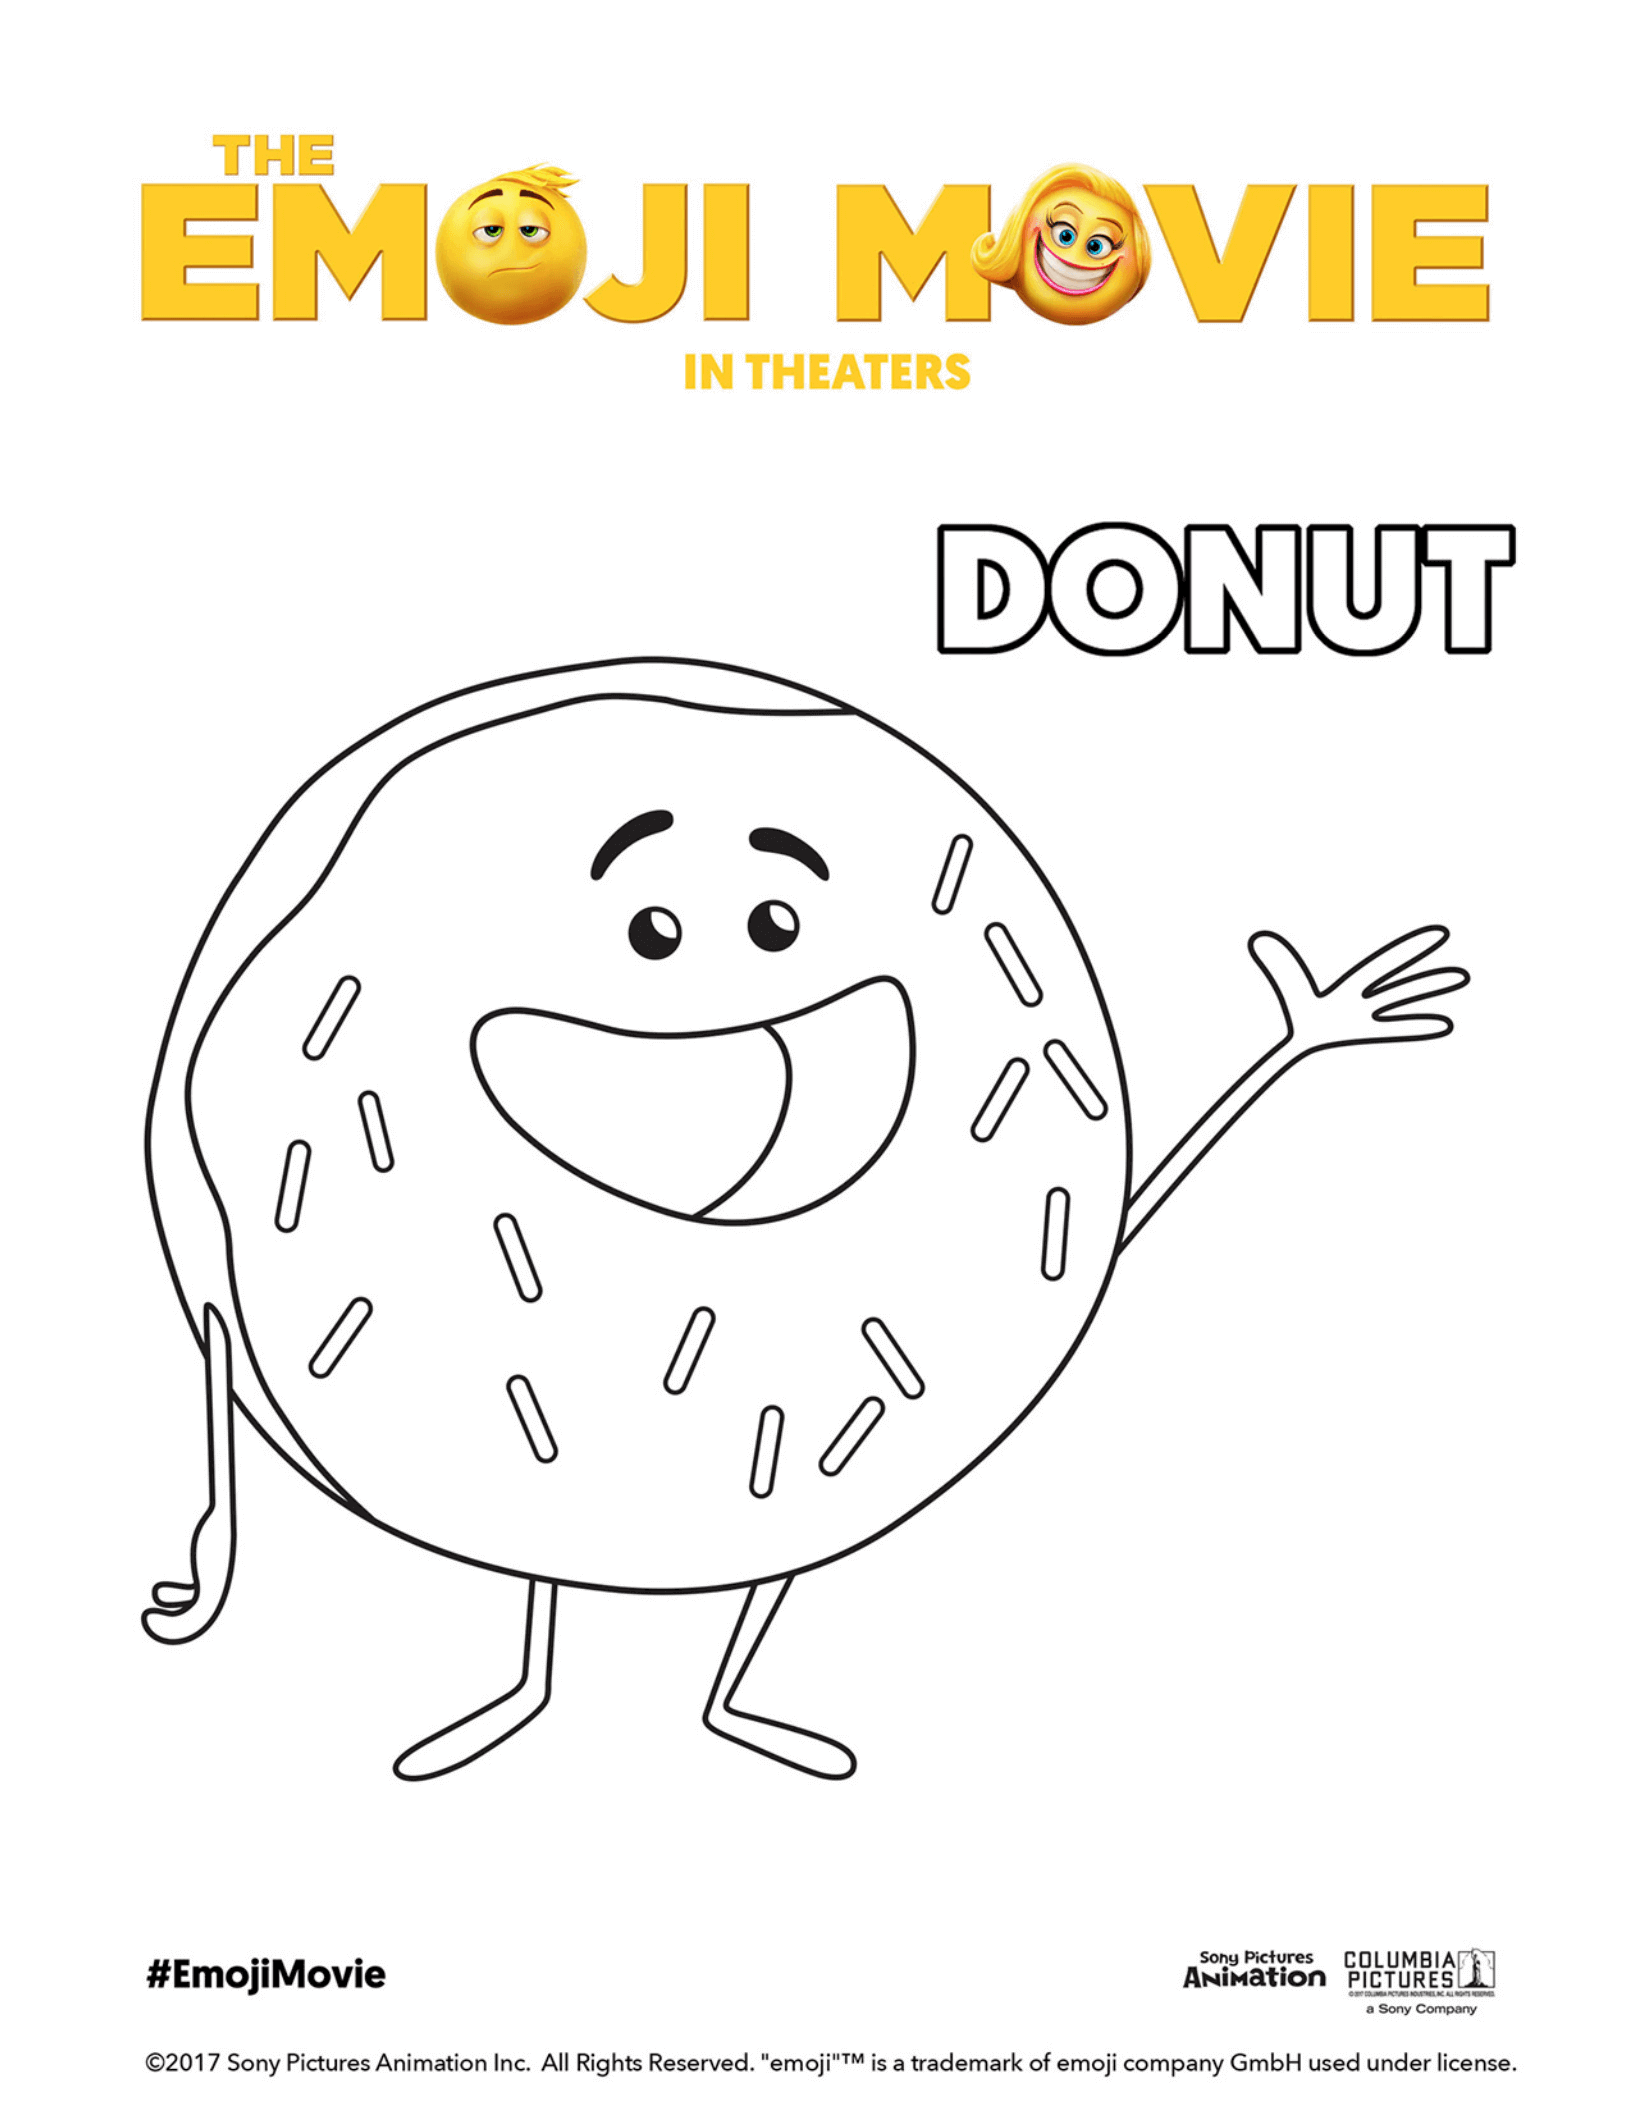 Free coloring pages emojis - The Emoji Movie Donut Coloring Page